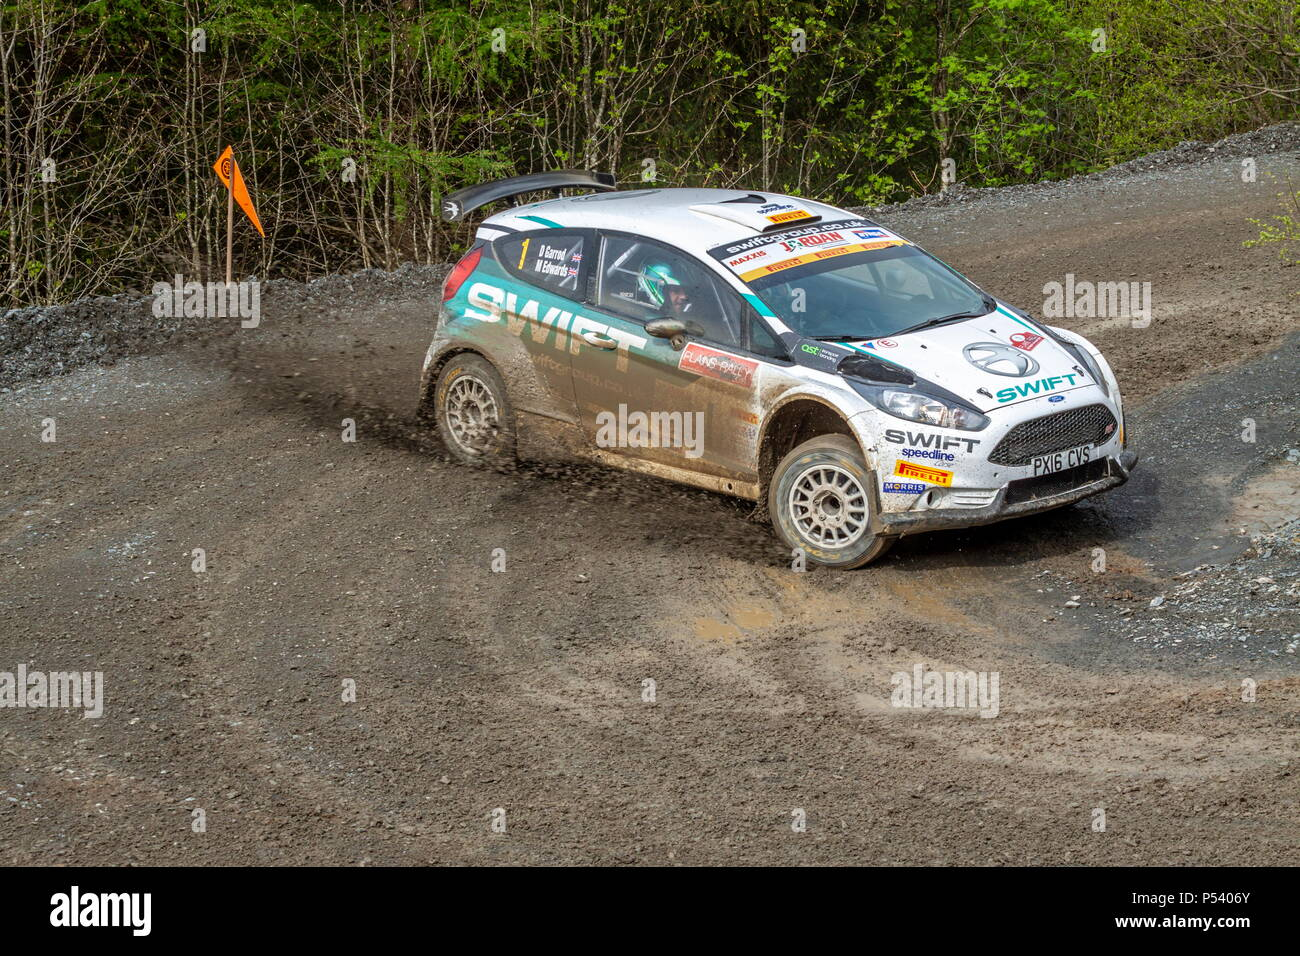 A Ford Fiesta rally car taking a corner on the Plains Rally in North Wales - Stock Image